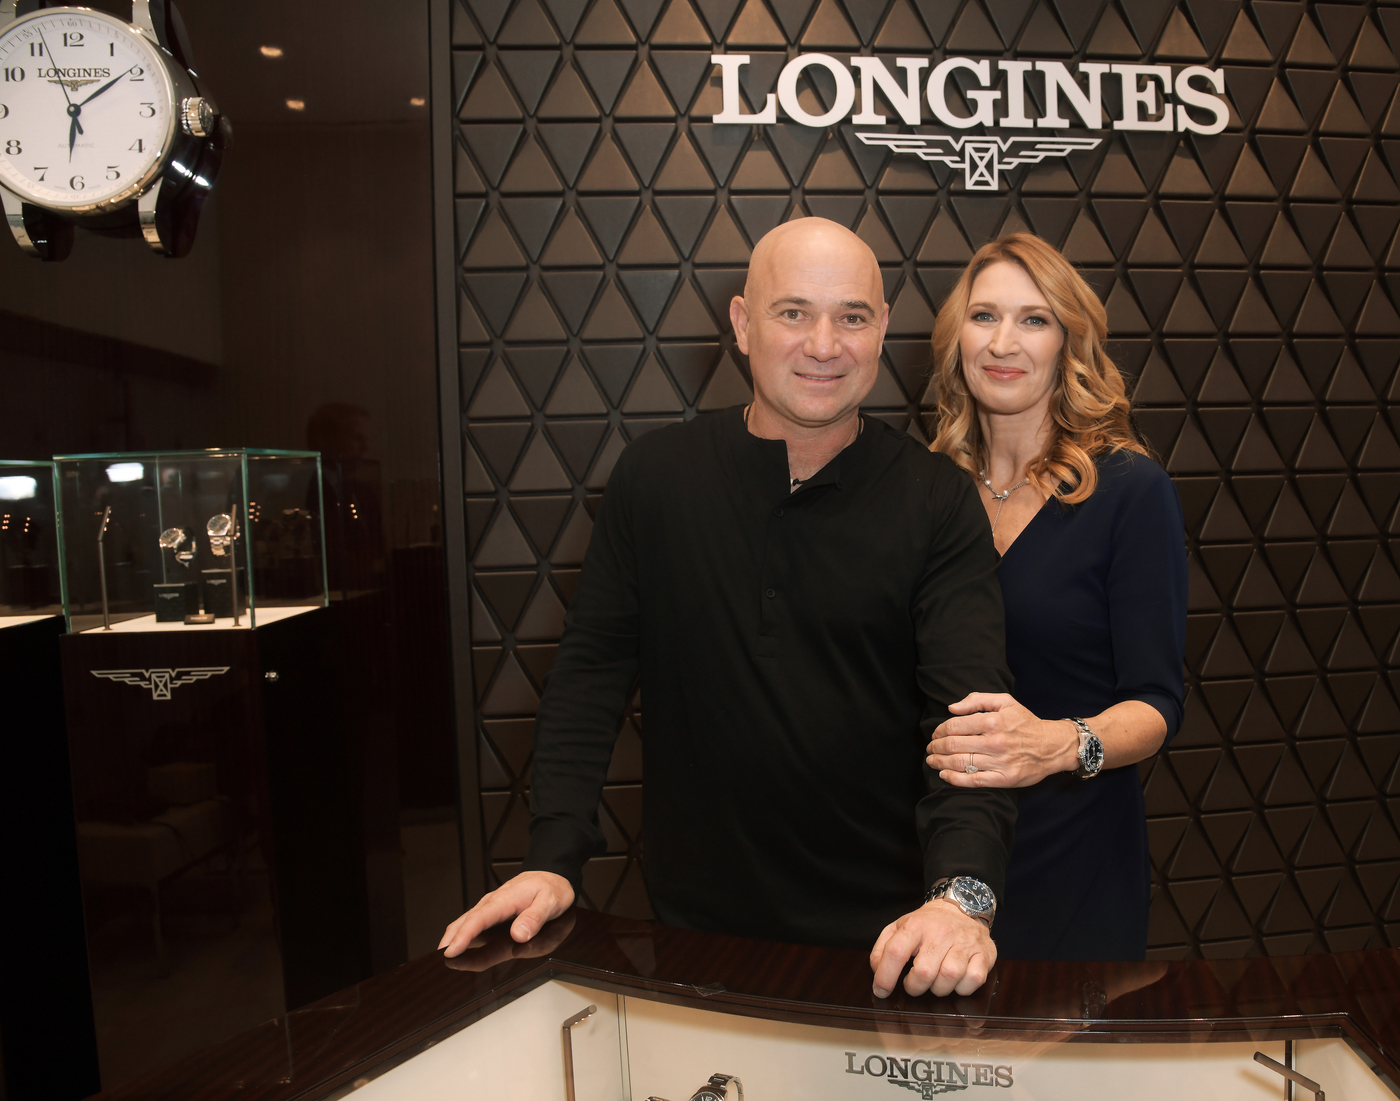 Longines Corporate Event: Andre Agassi and Stefanie Graf inaugurate Longines' new sales corner in Las Vegas  6